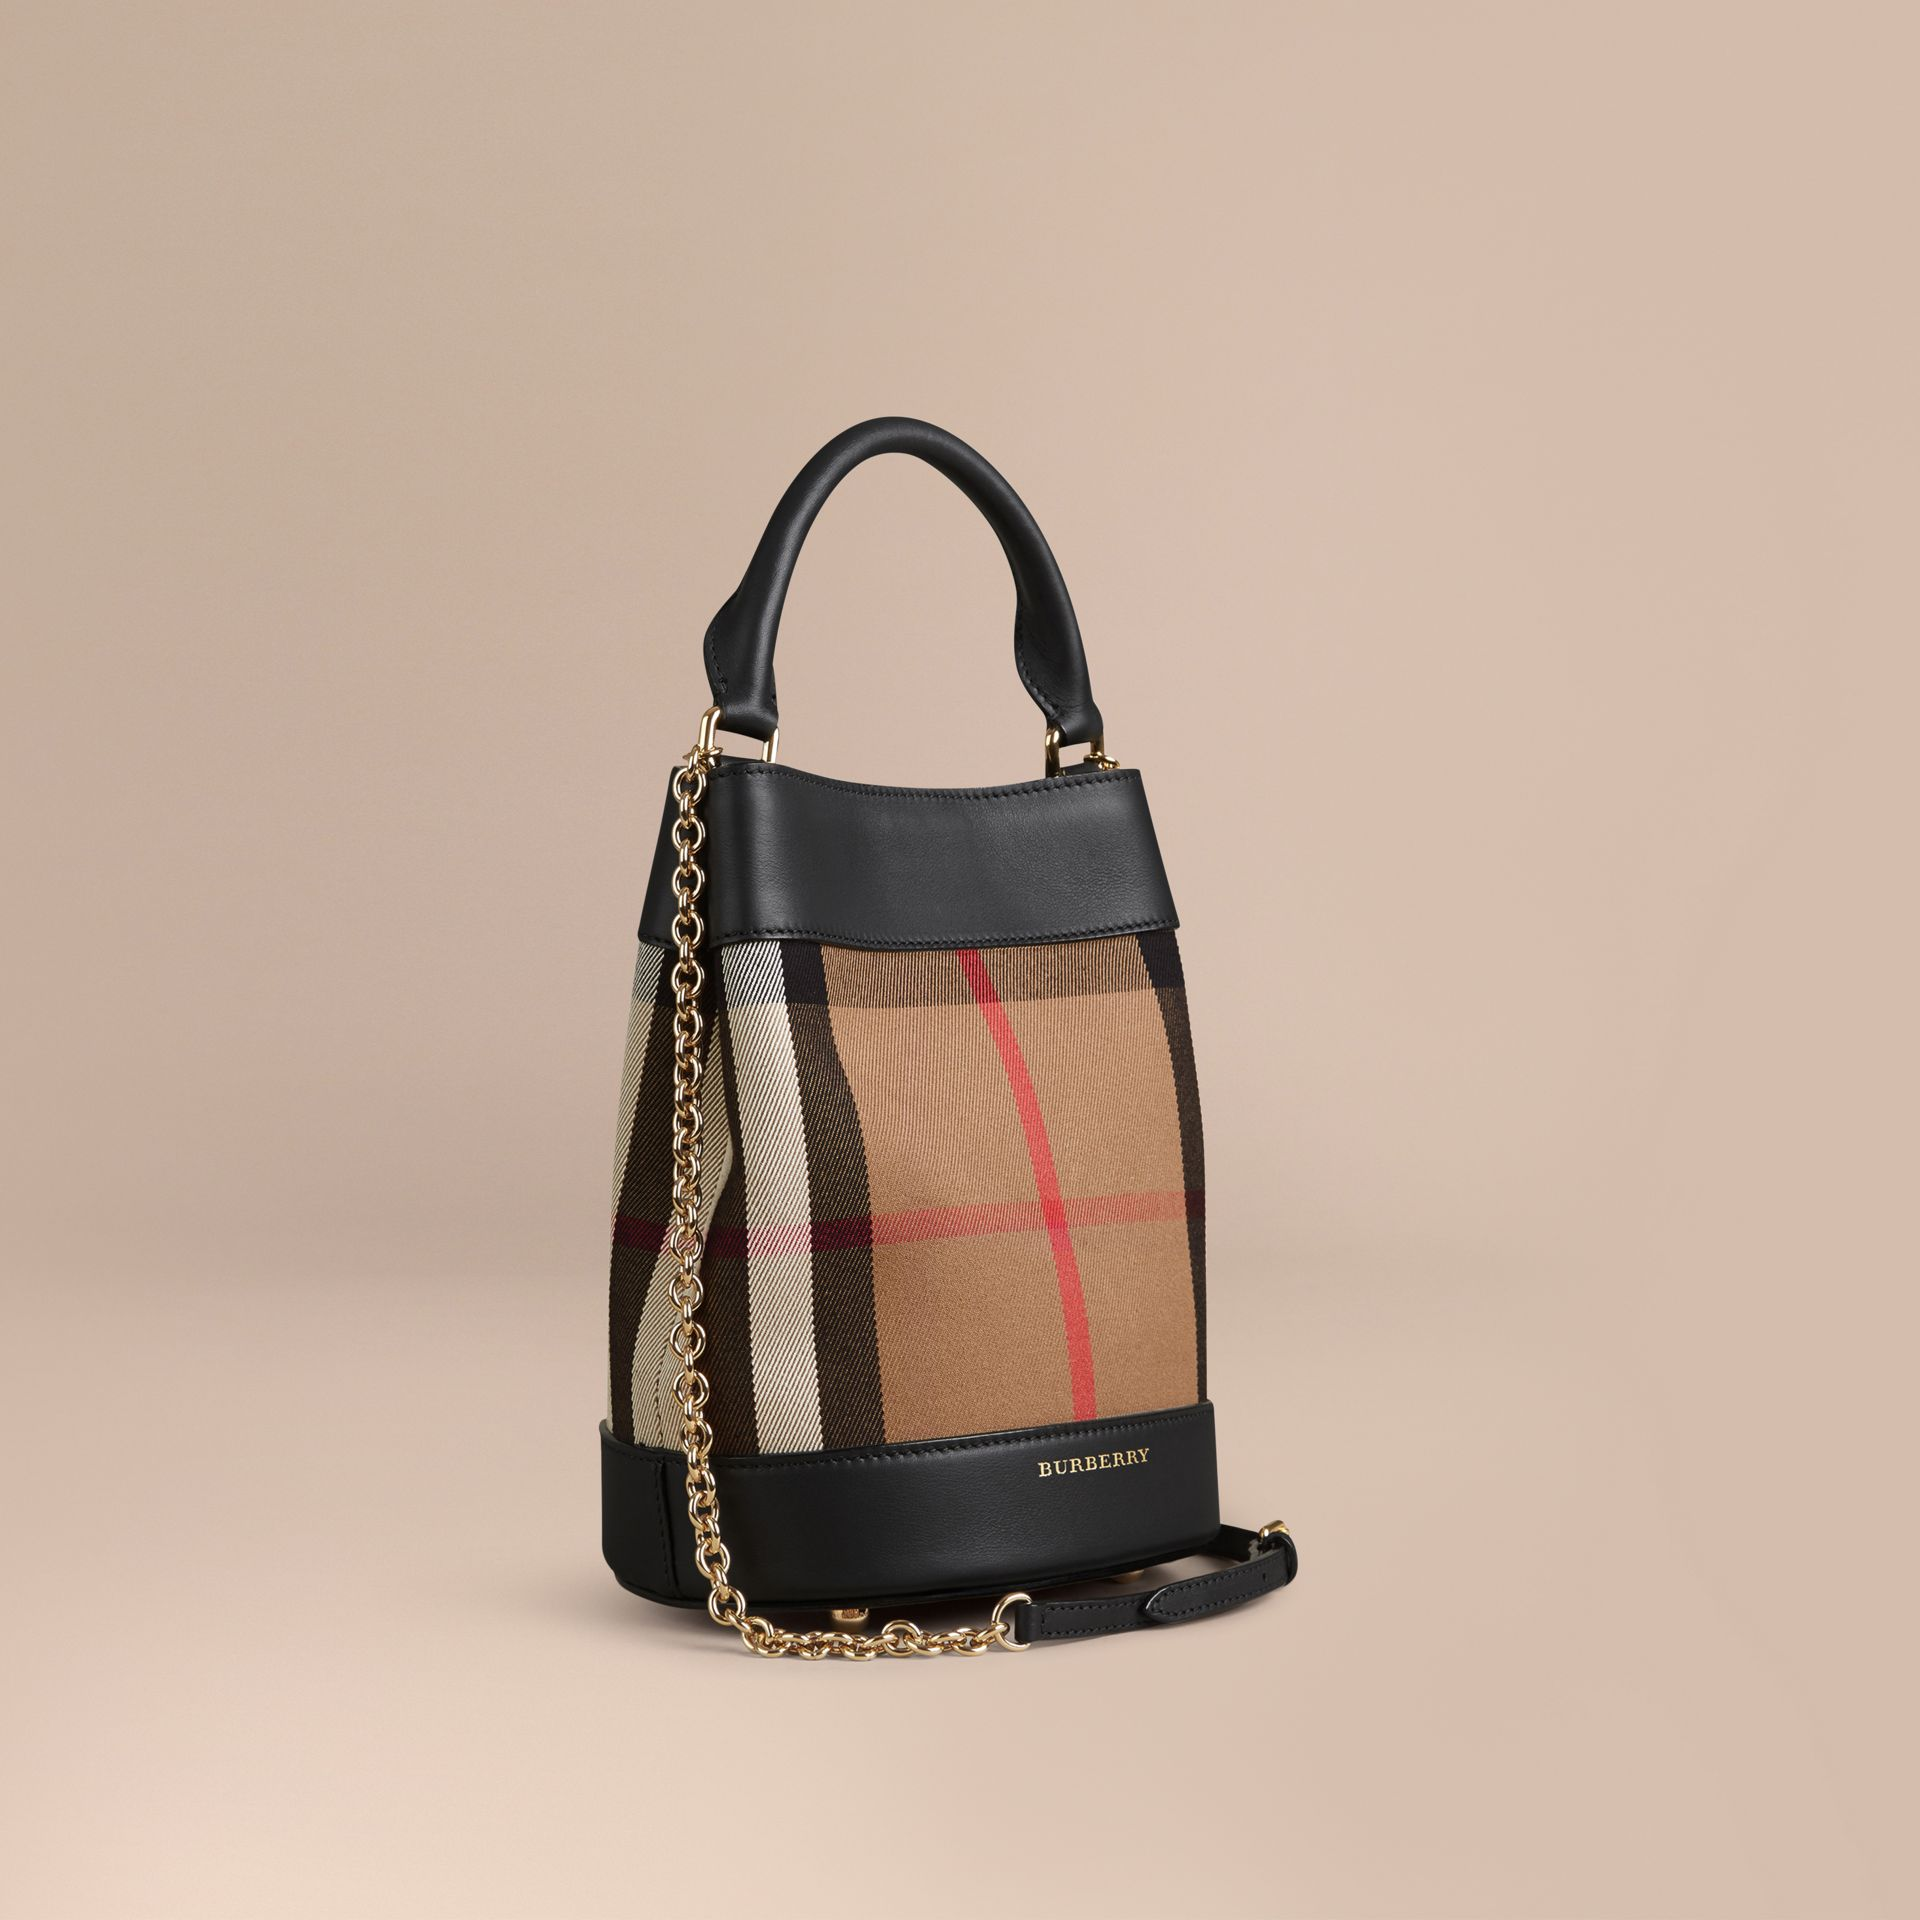 Black The Small Bucket Bag in House Check and Leather Black - gallery image 1